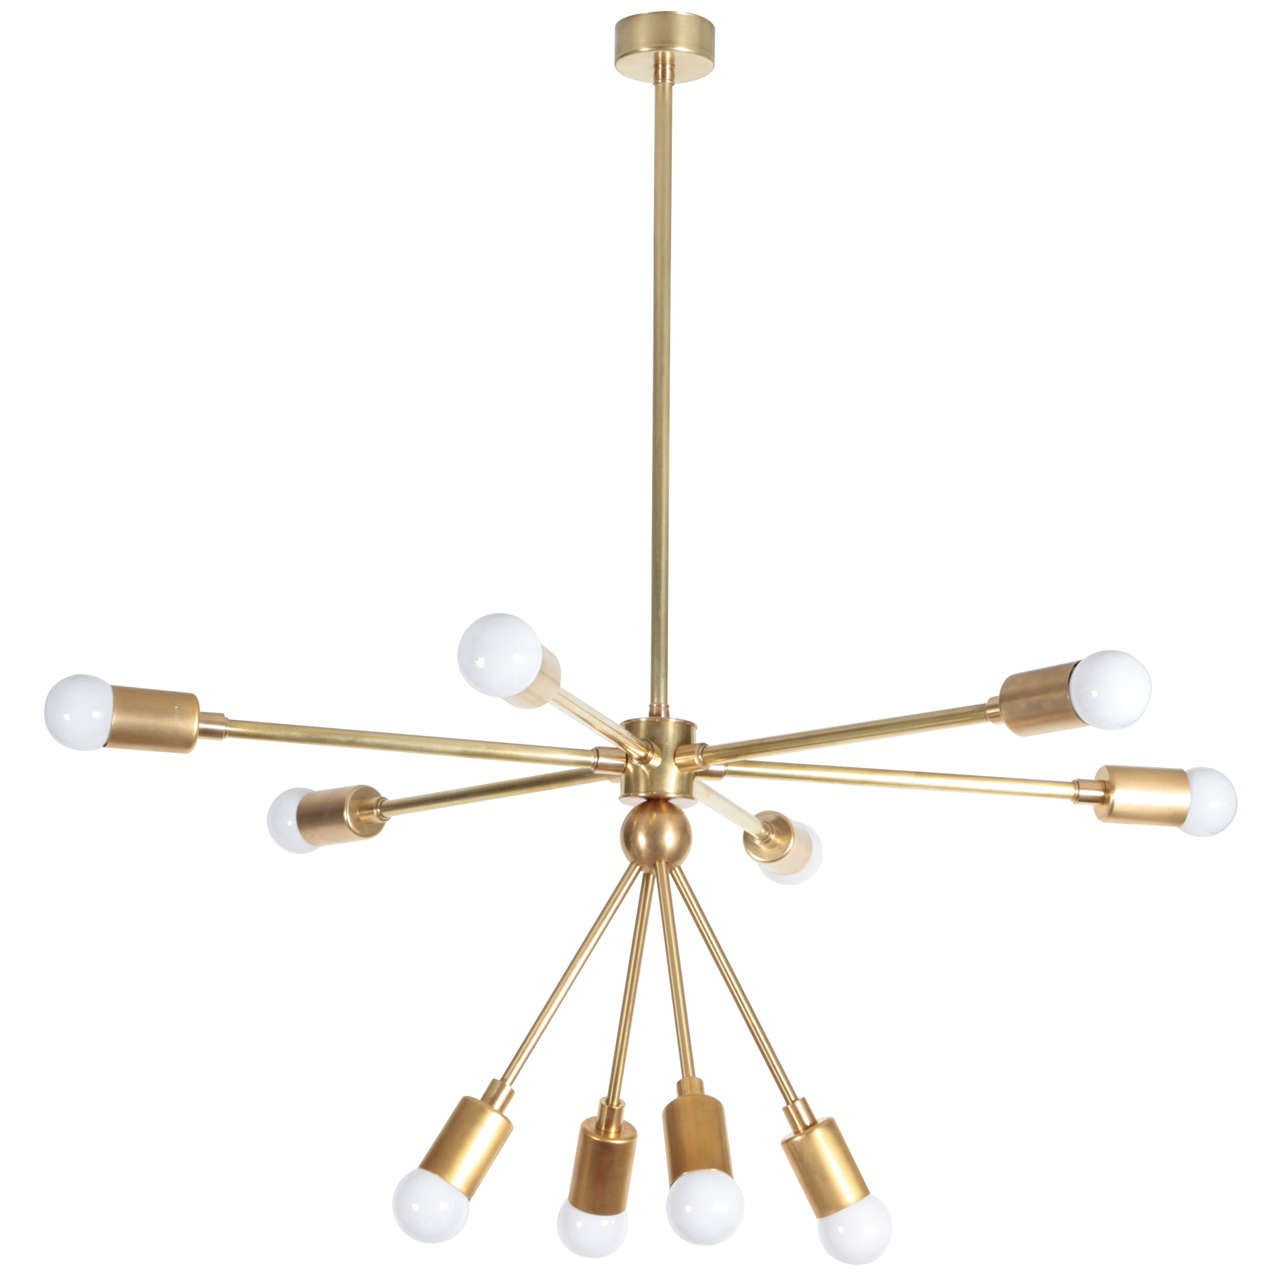 Custom Macomber Modern Brass Sputnik Light Fixture